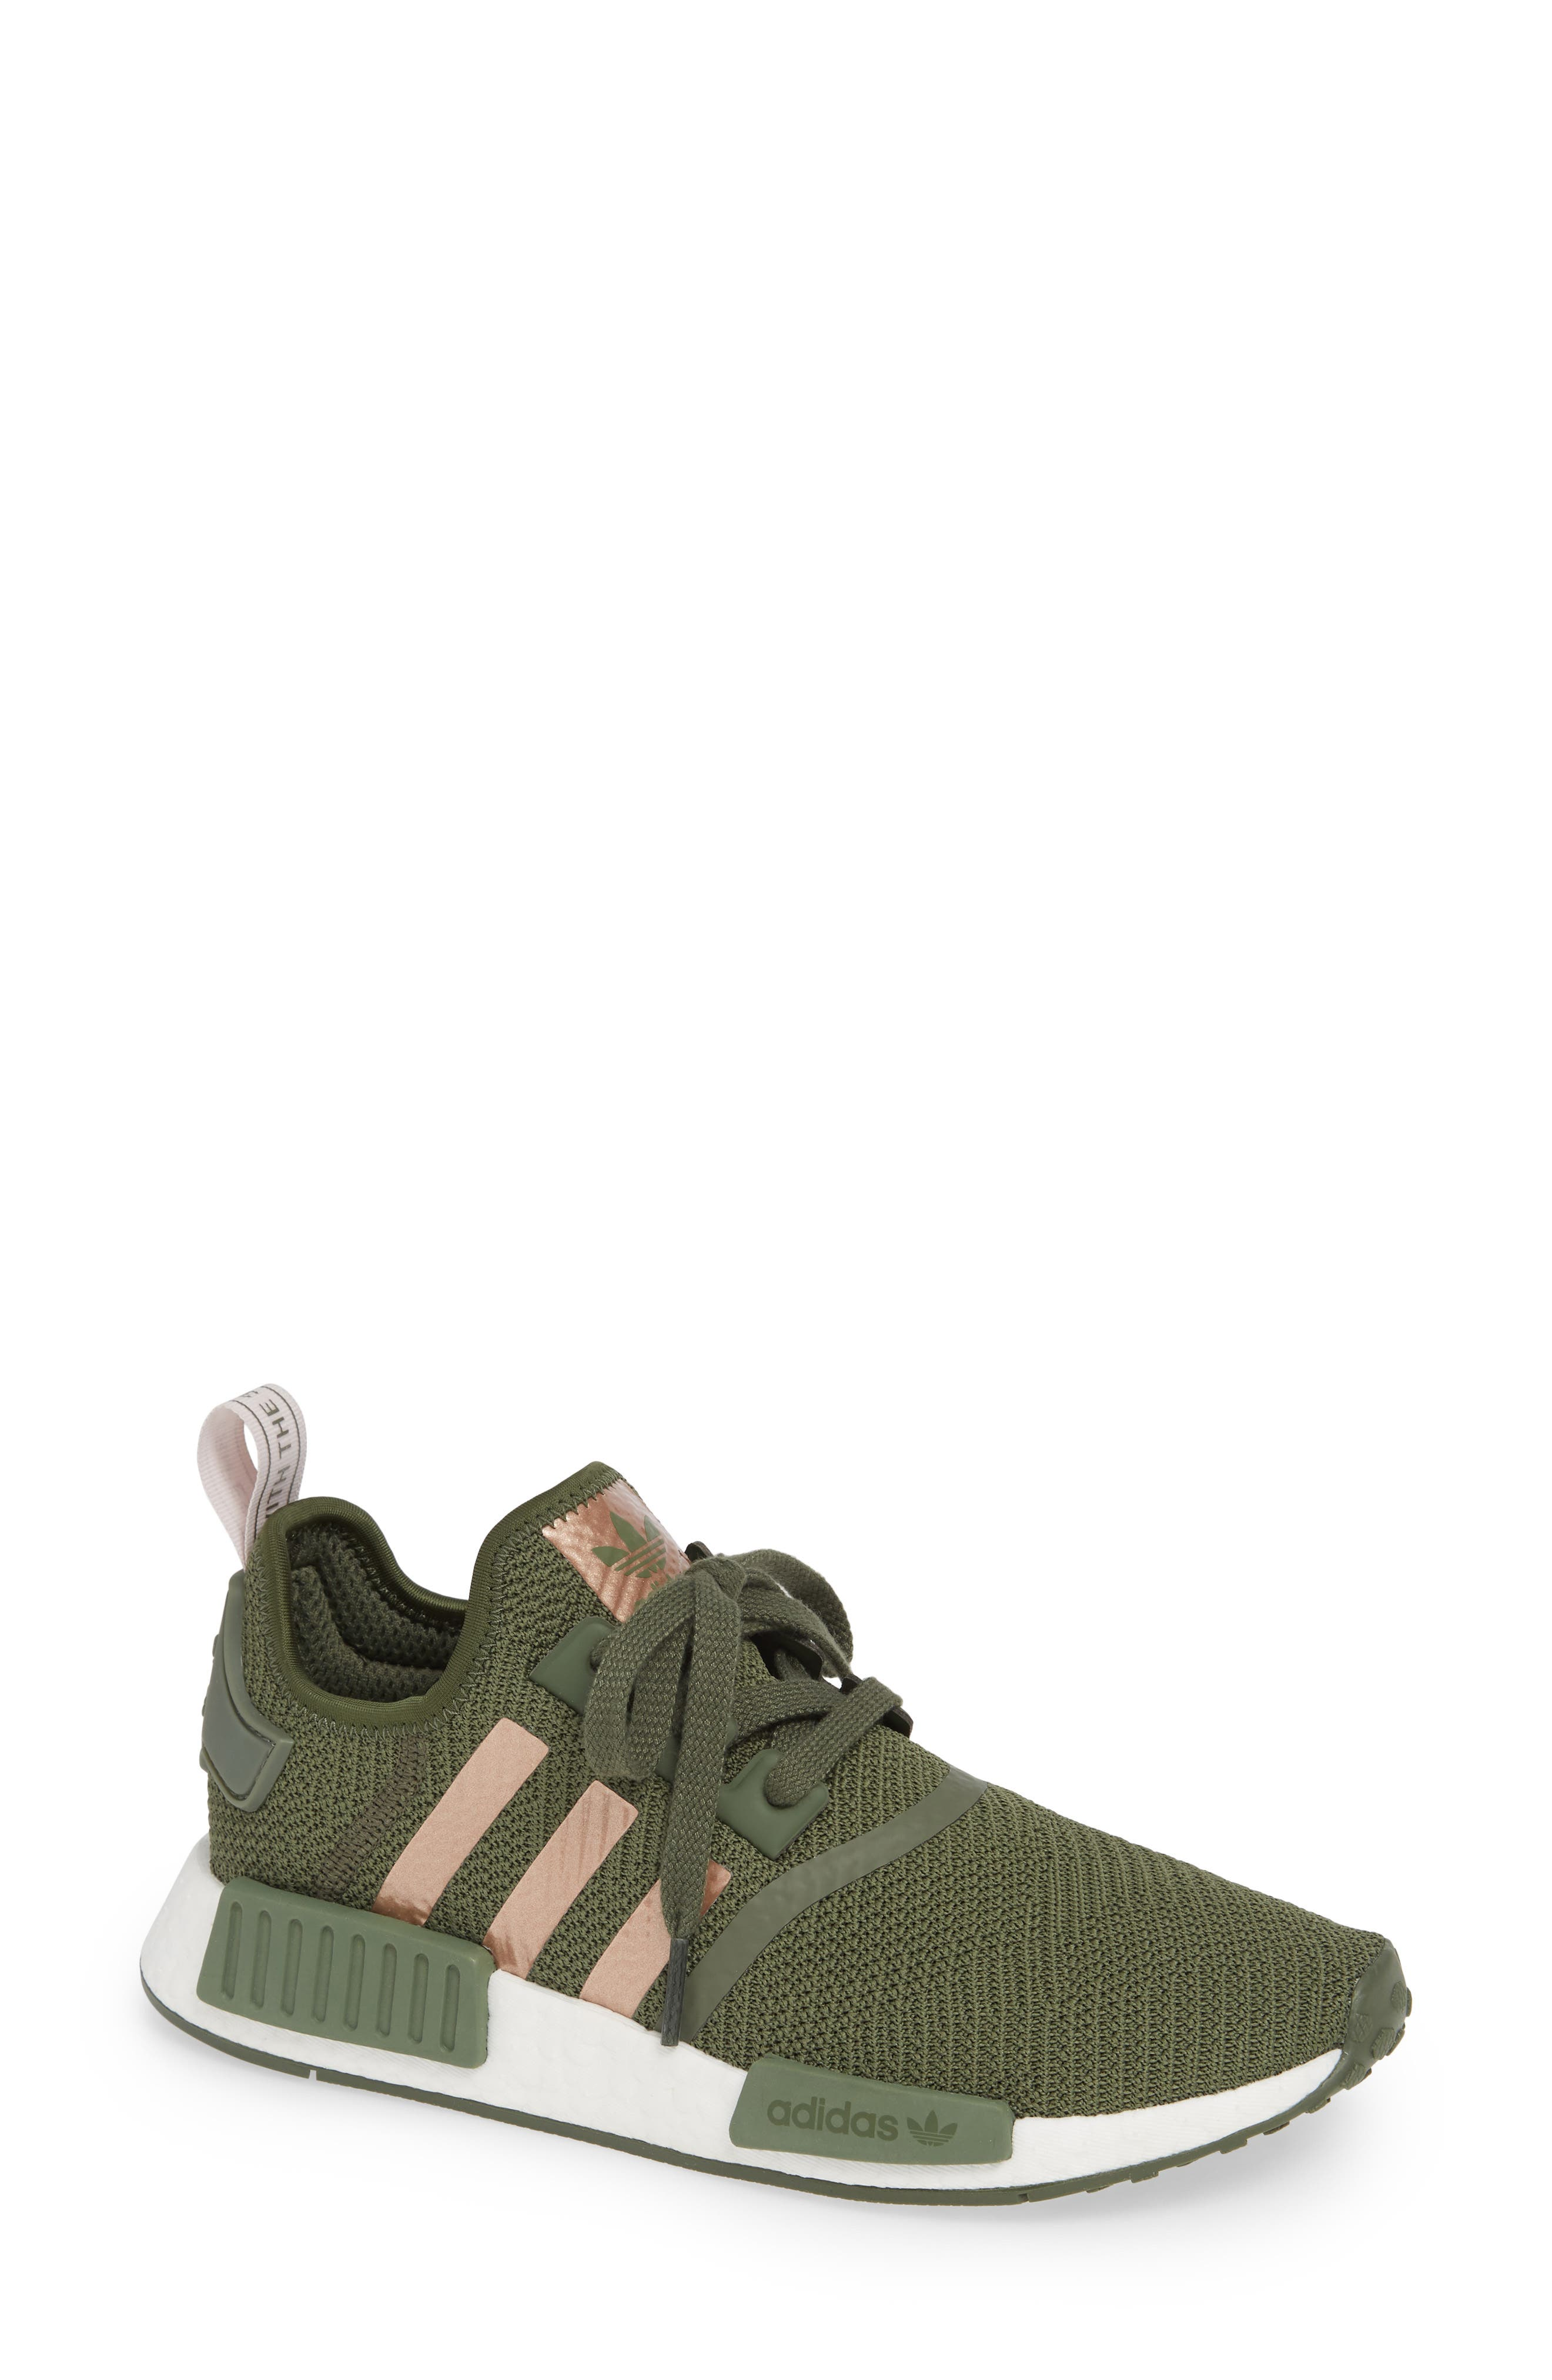 NMD R1 Athletic Shoe,                         Main,                         color, BASE GREEN/ SUPER POP